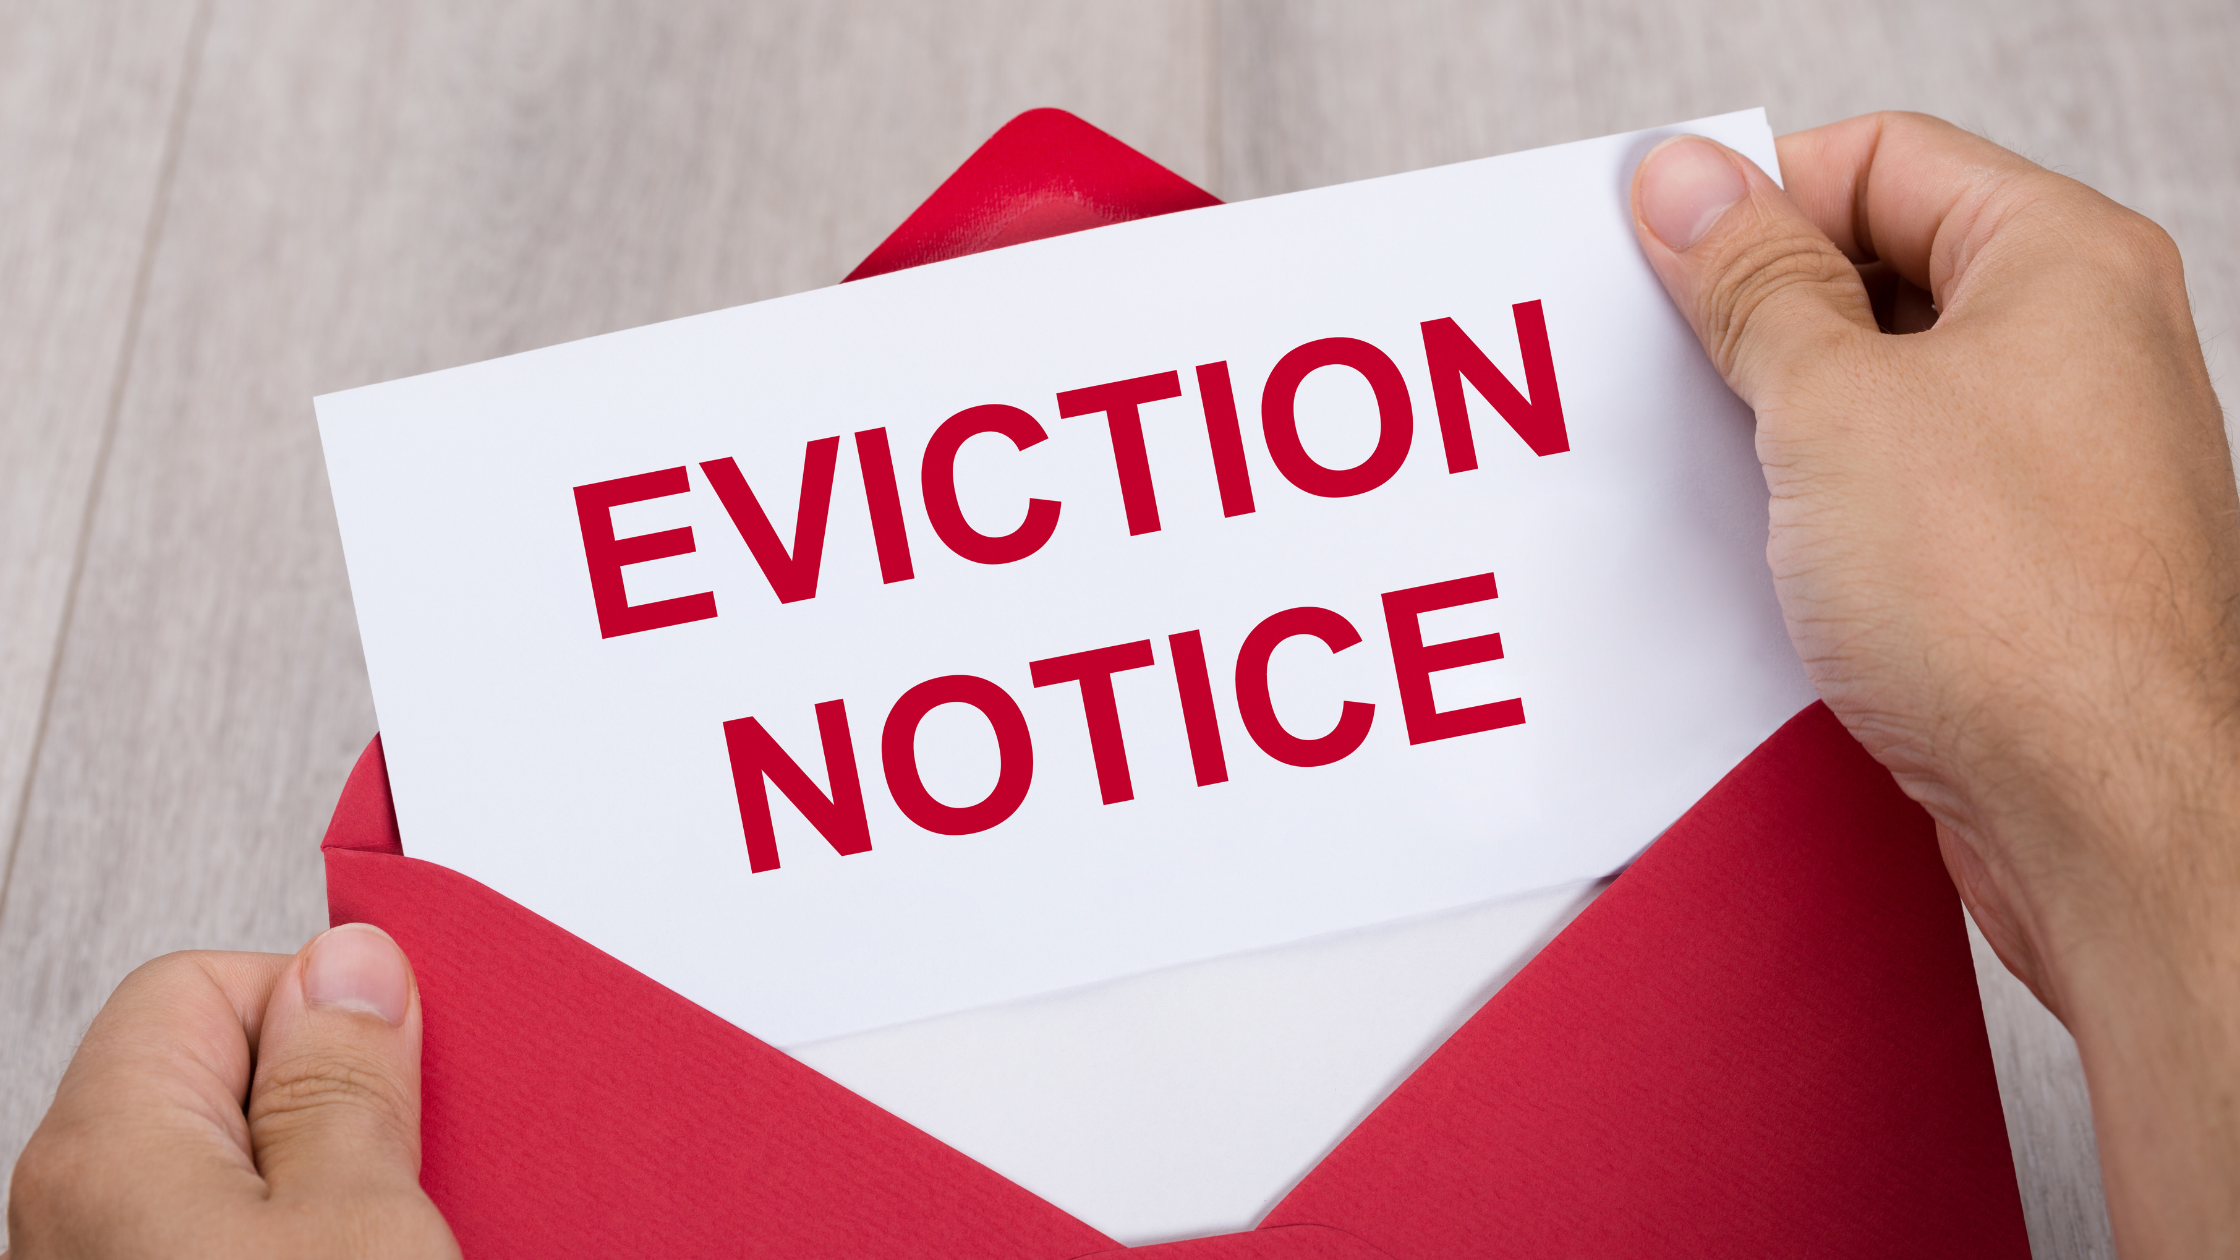 Eviction Update: As a Landlord make sure you're up-to-date